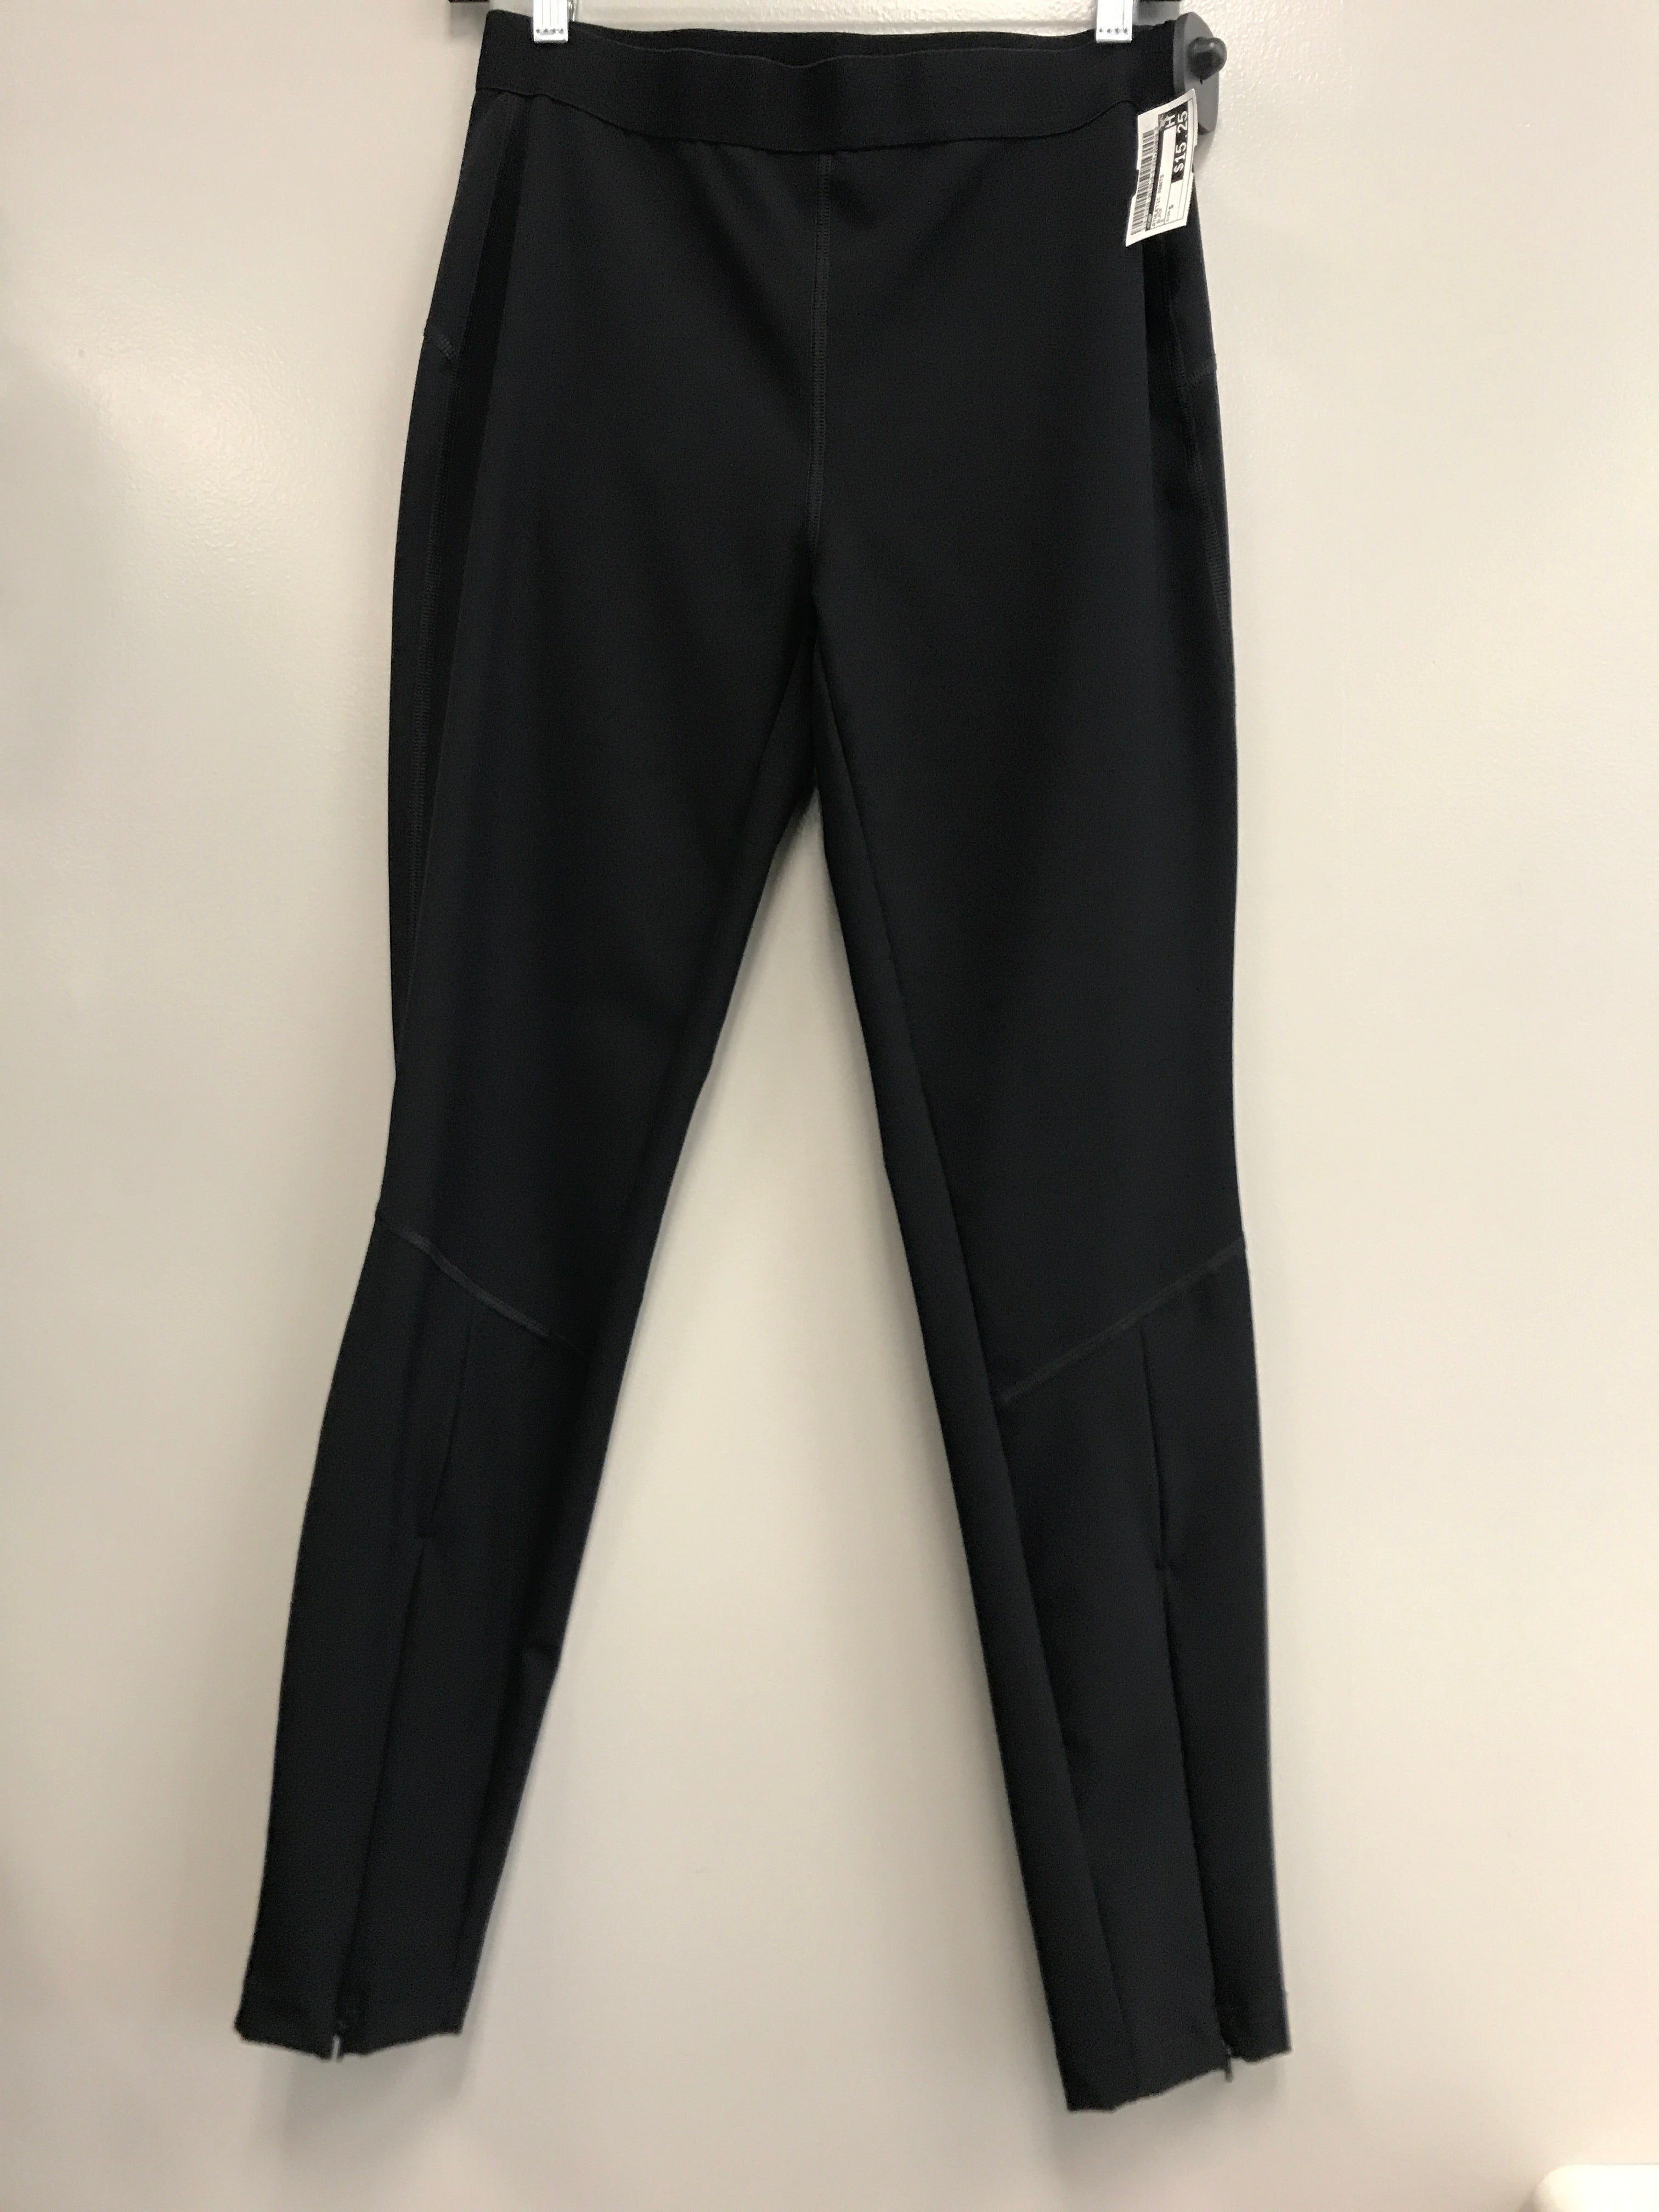 Primary Photo - BRAND: GAP <BR>STYLE: ATHLETIC PANTS <BR>COLOR: BLACK <BR>SIZE: S <BR>SKU: 313-31328-36746